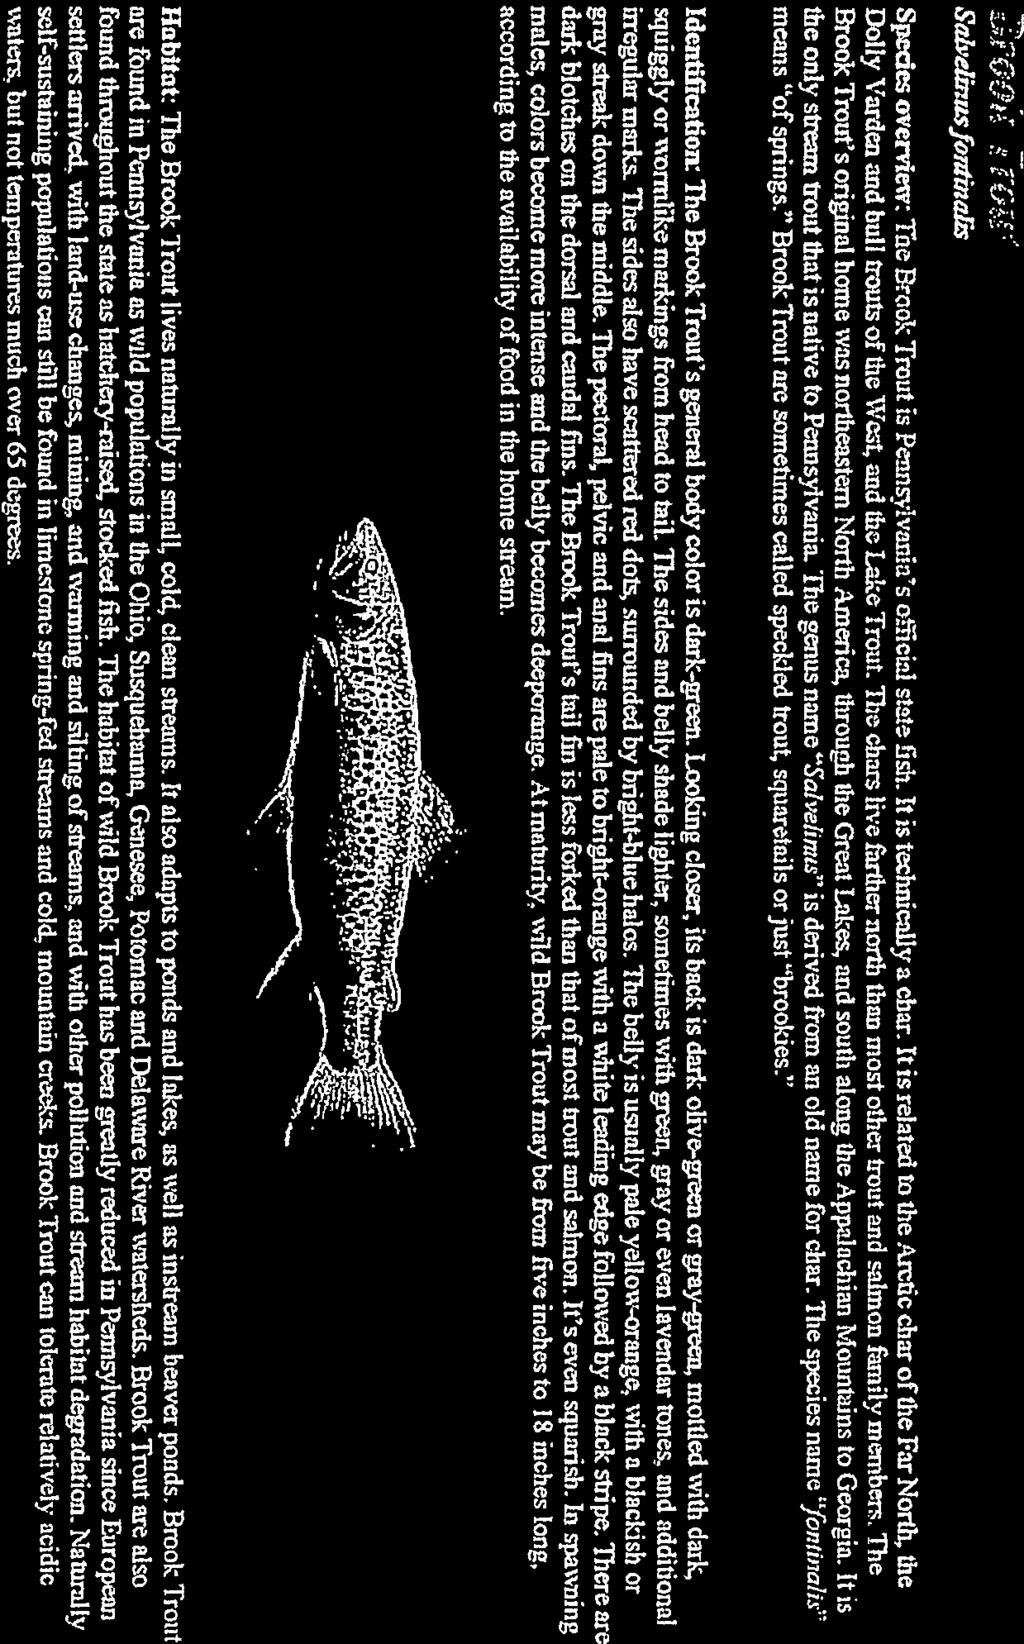 iallery of Pennsylvania Fishes - Chapter 15, Trout and Salmon Page 1 of 1 Sth eliezlrf(rnfhudis Species overviear: The Brag: Treat is tcunskei aiiieui stale It is foelsnicaliv a char.